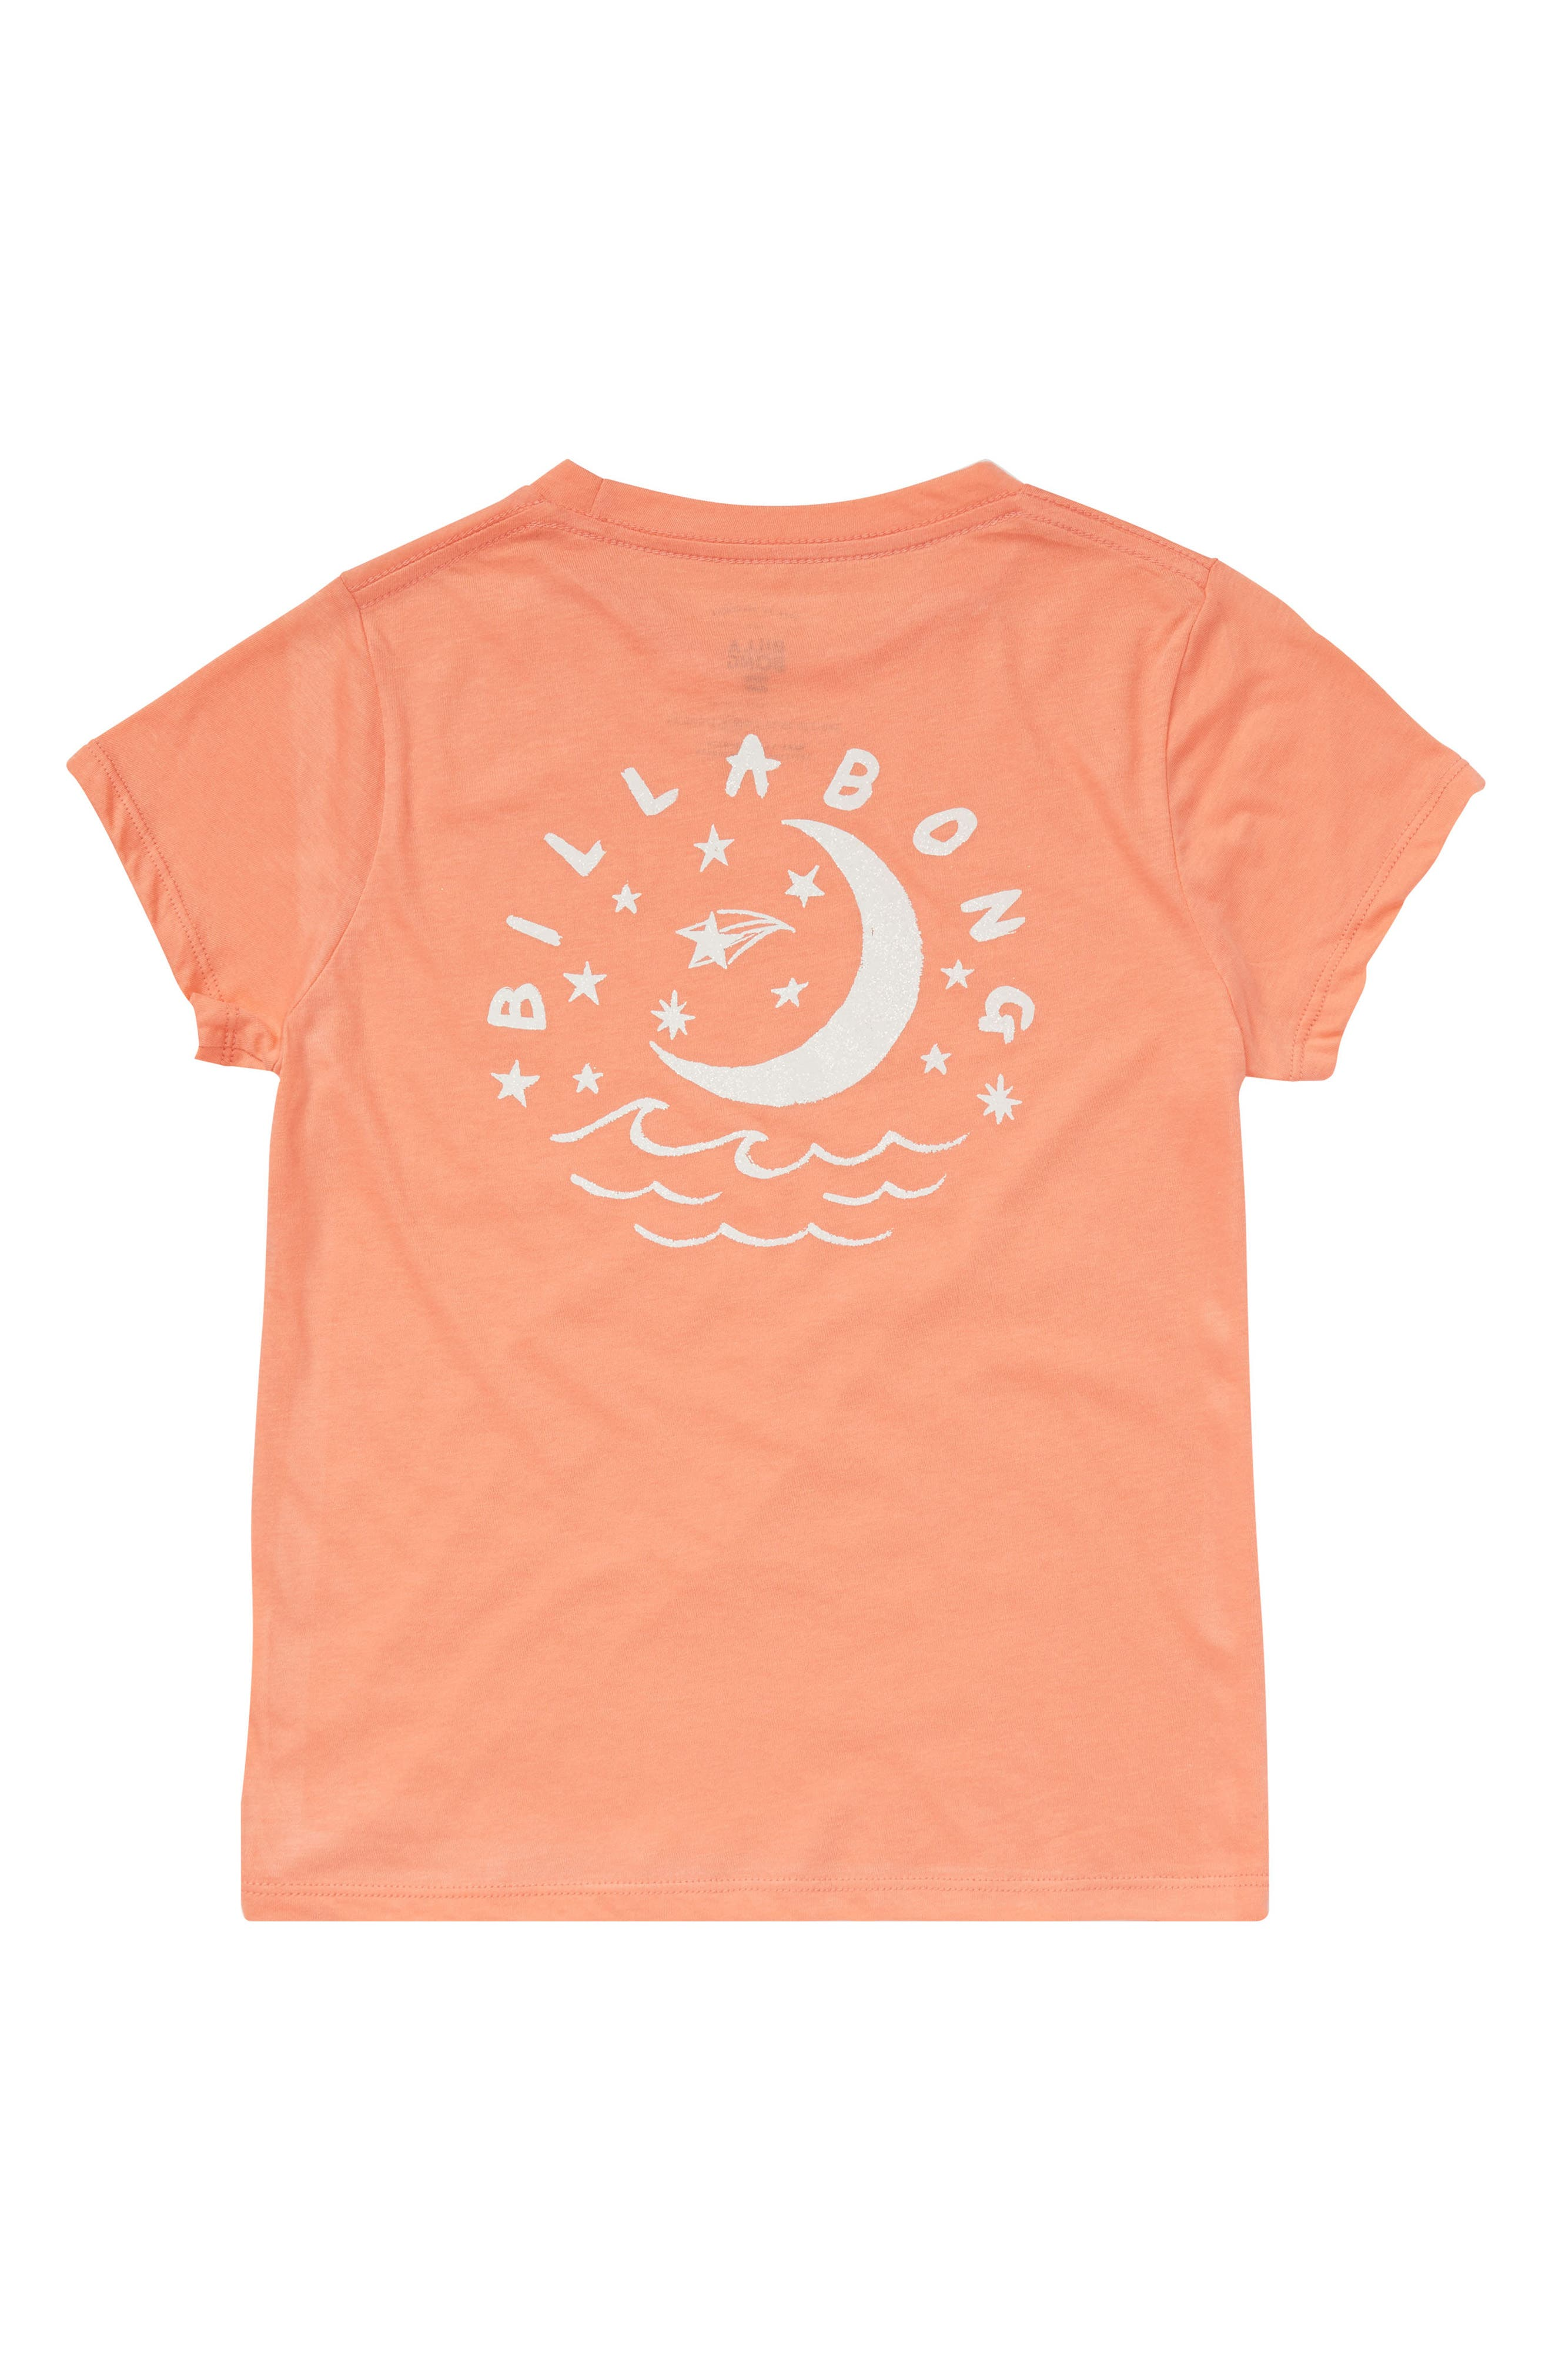 Night Sky Graphic Tee,                             Alternate thumbnail 2, color,                             950